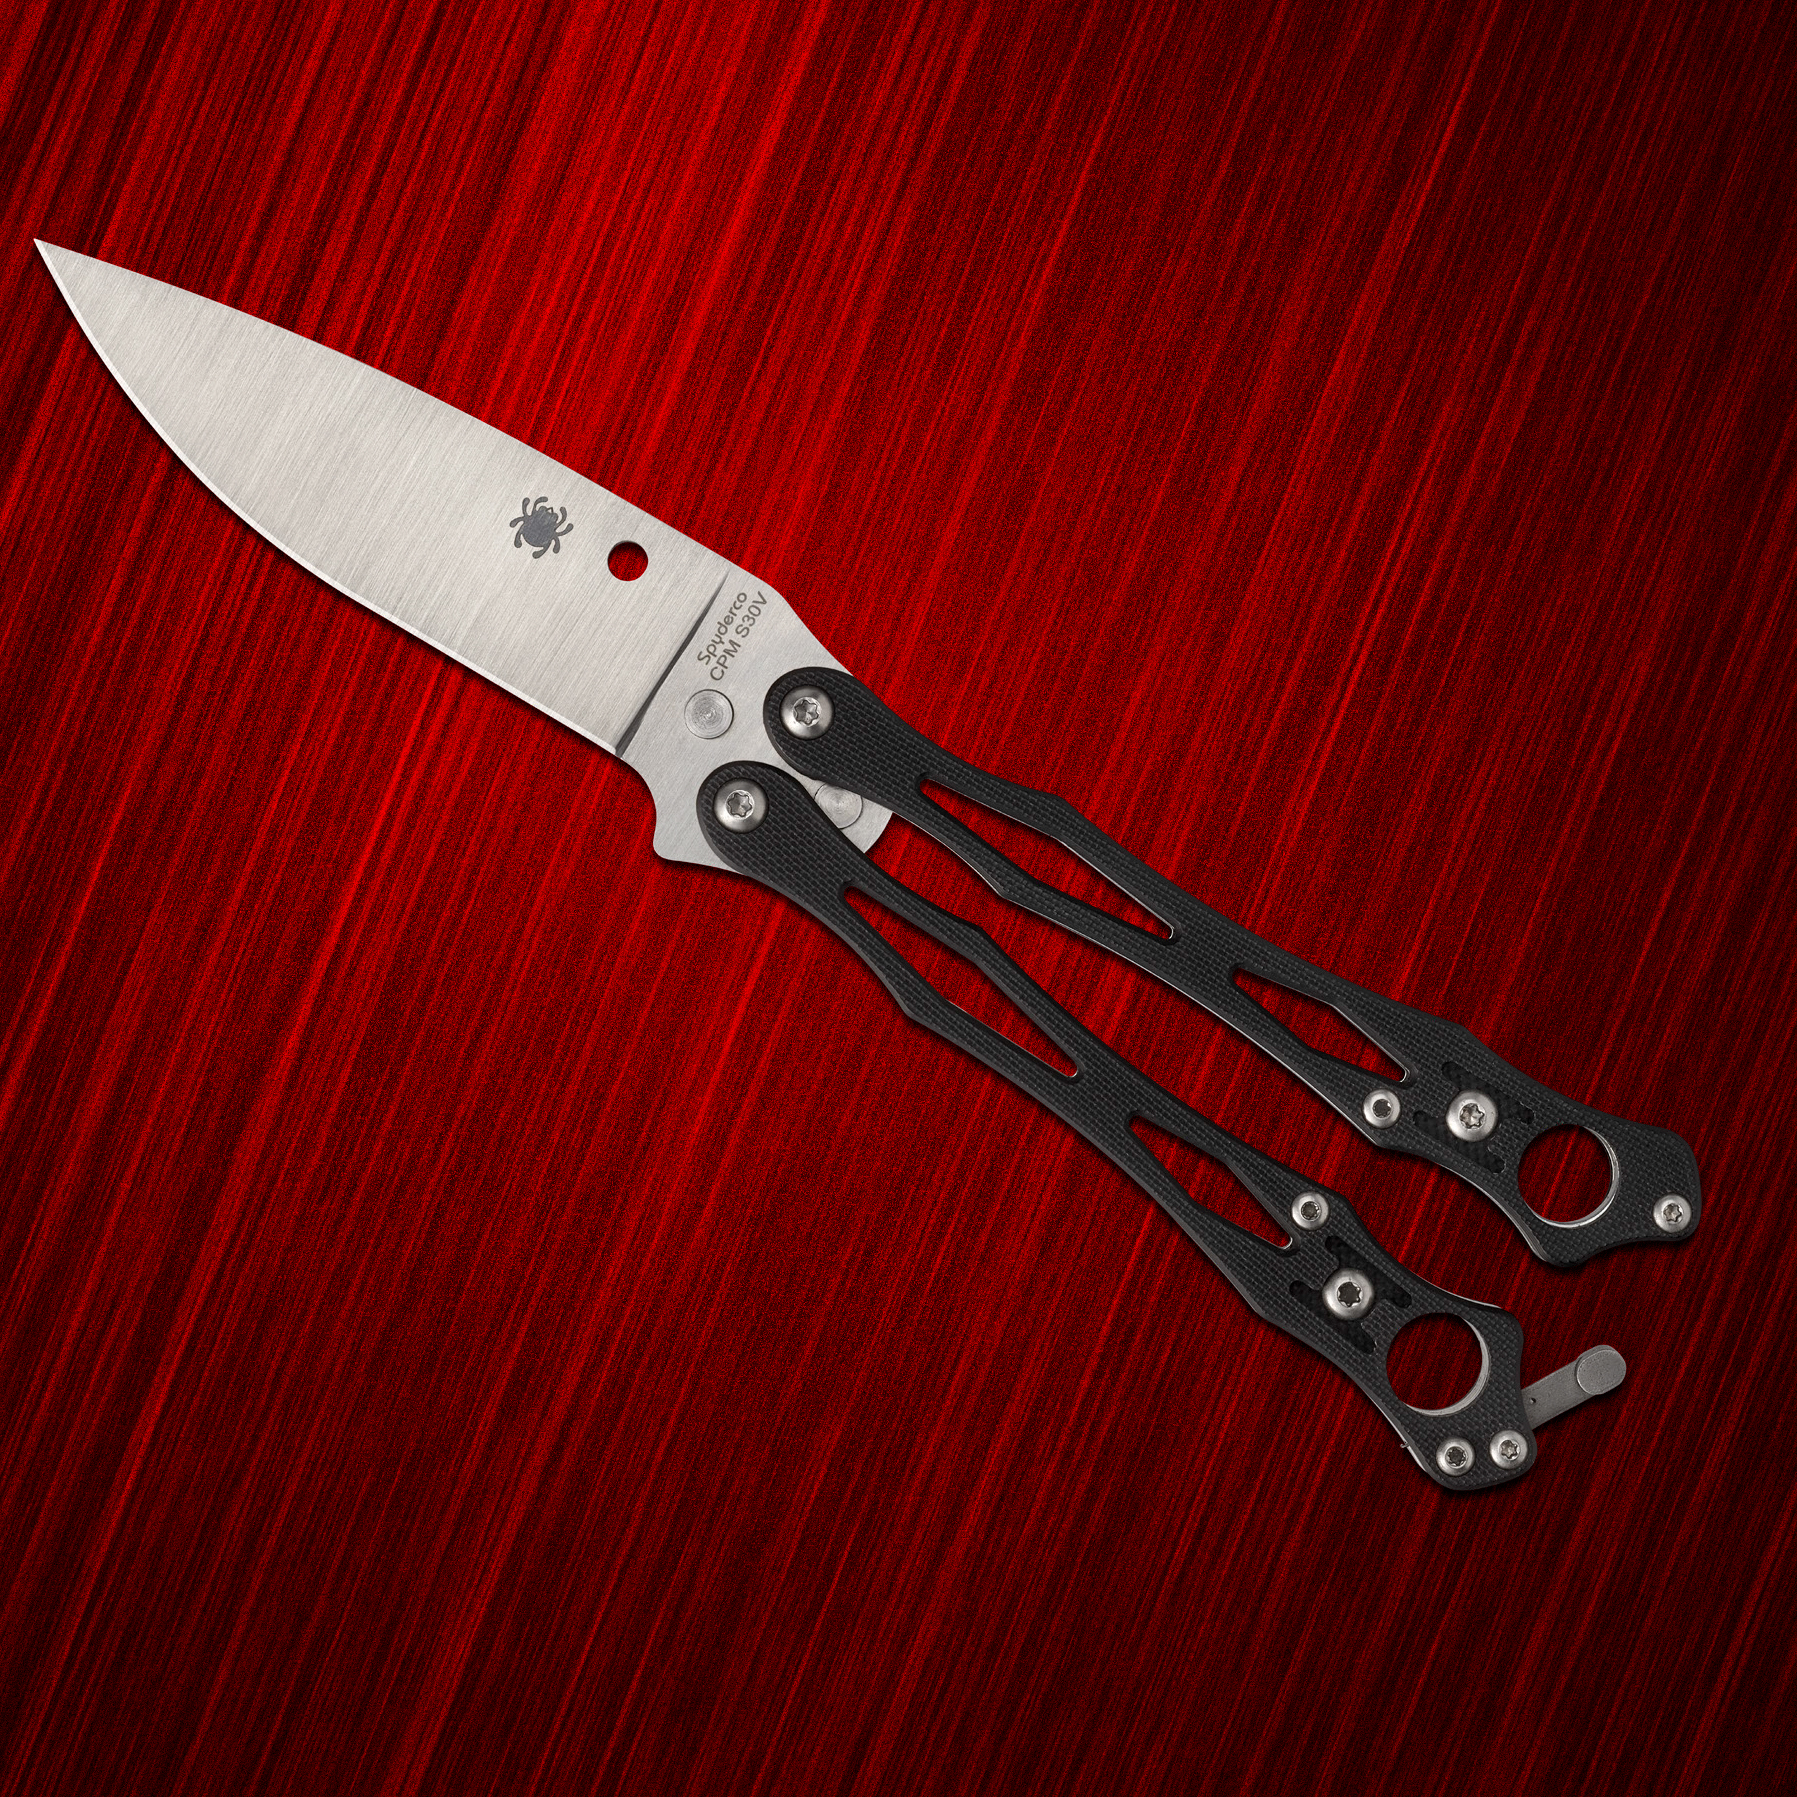 Spyderco Smallfly balisong on a red background